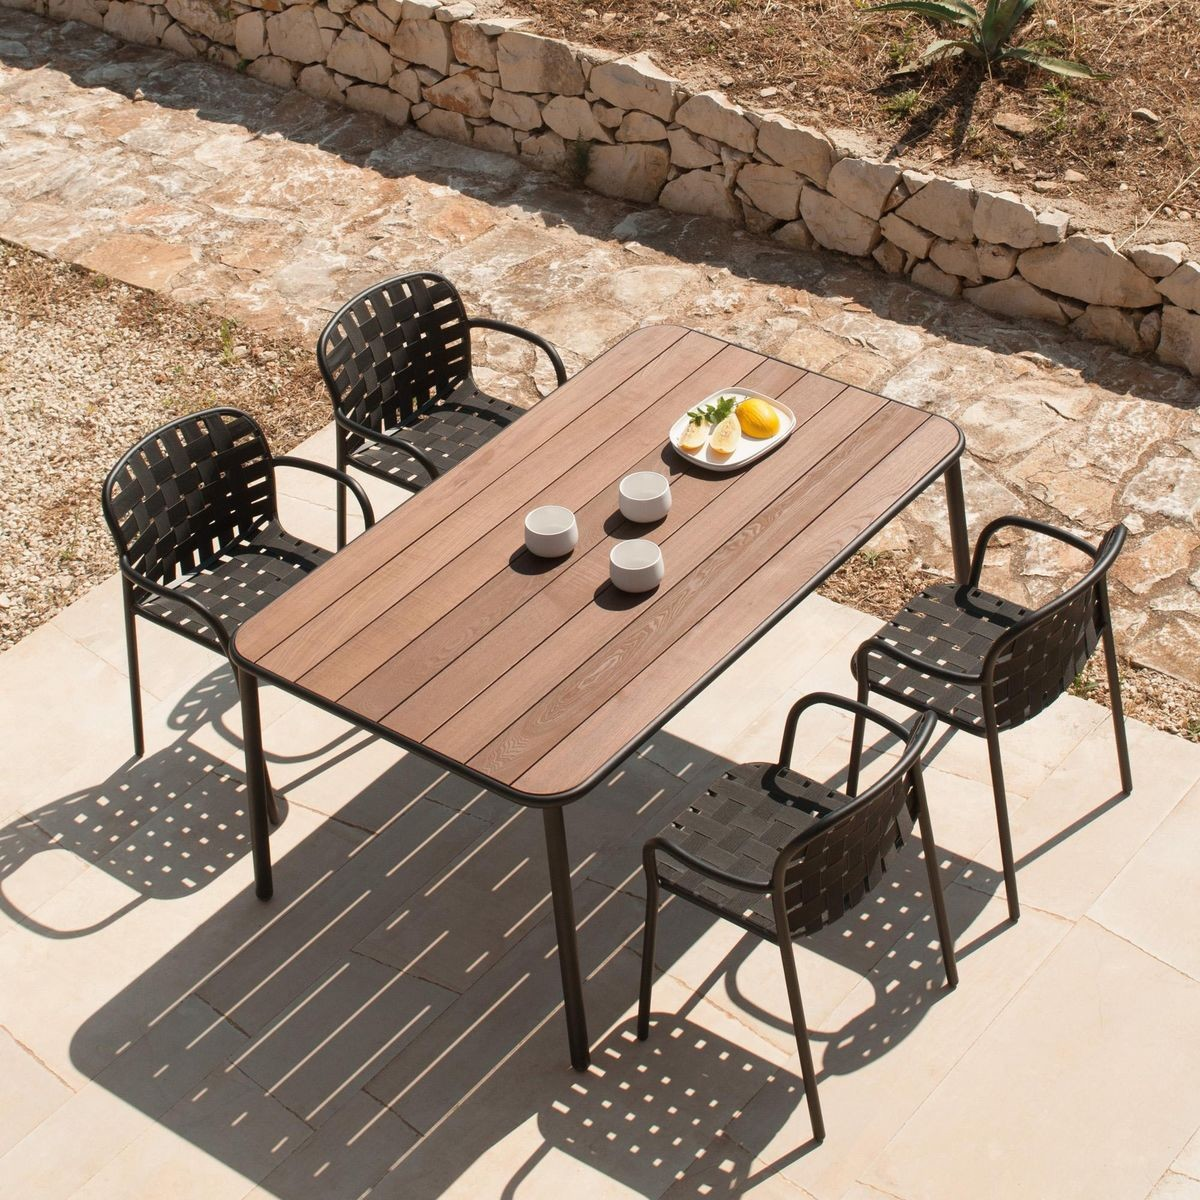 Yard Dining Table (Wood Top) from Emuamericas, llc